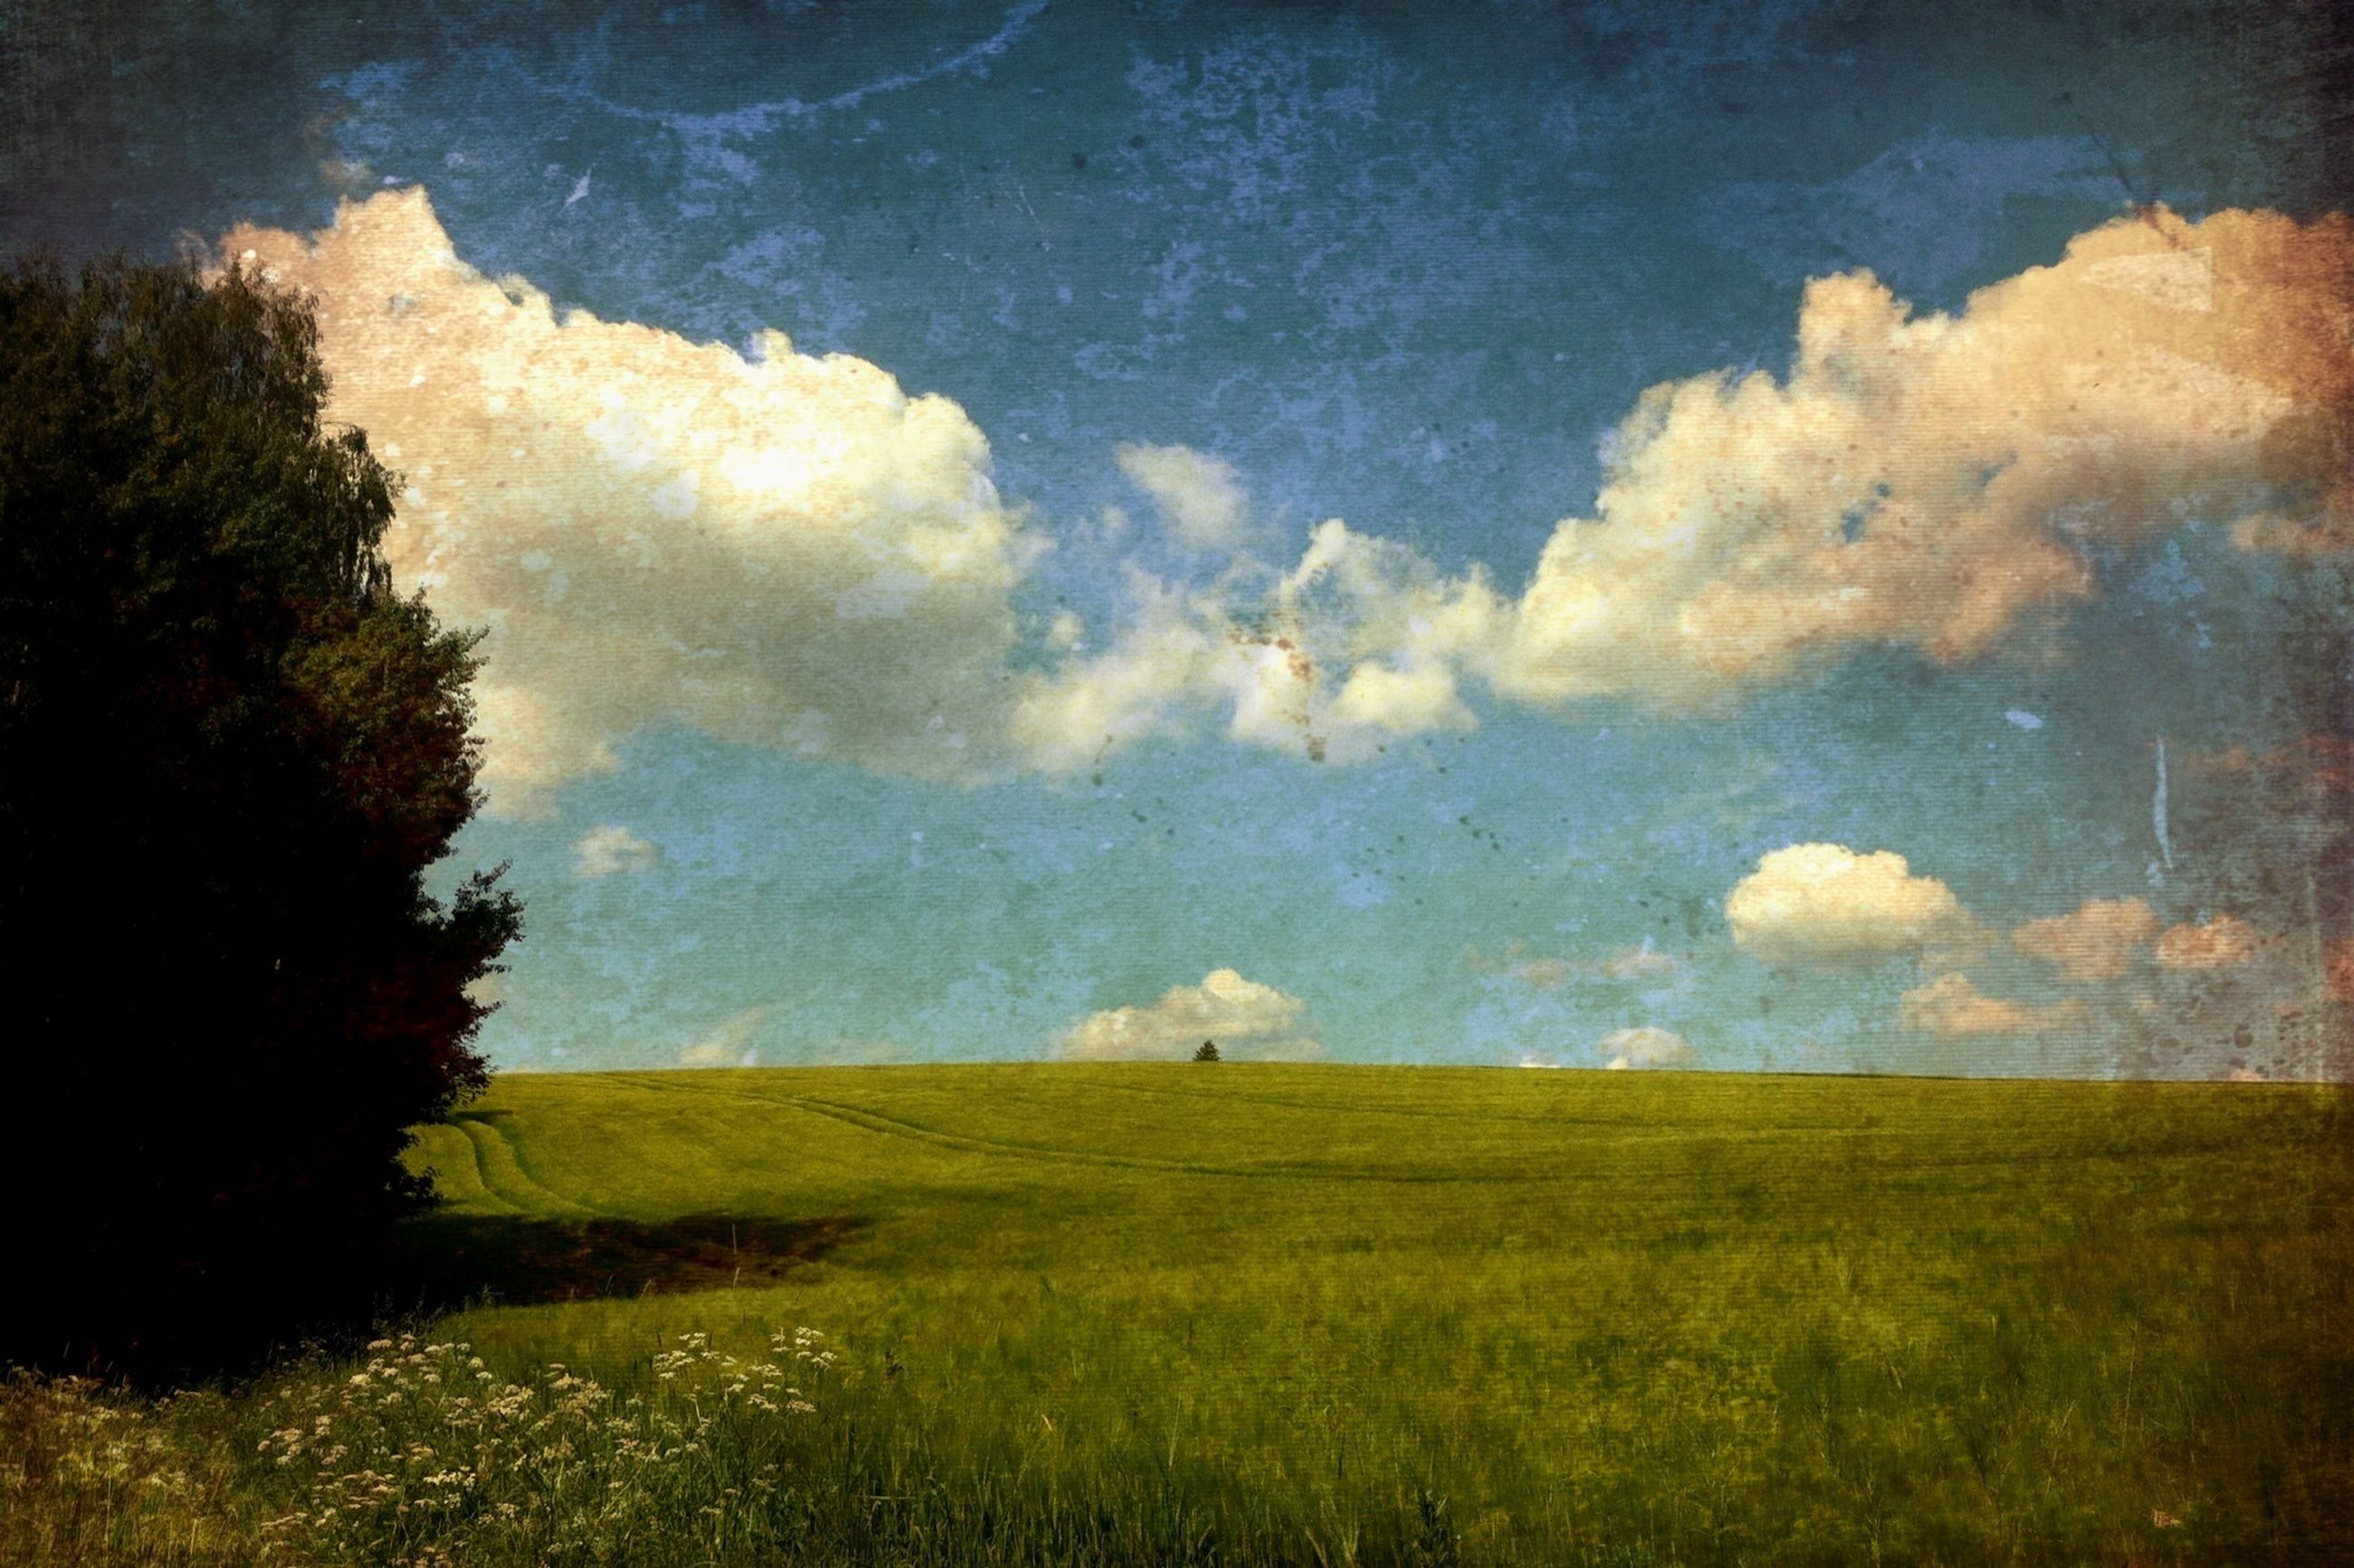 sky, grass, field, tranquility, tranquil scene, cloud - sky, landscape, beauty in nature, nature, scenics, tree, grassy, growth, cloud, green color, cloudy, blue, idyllic, outdoors, no people